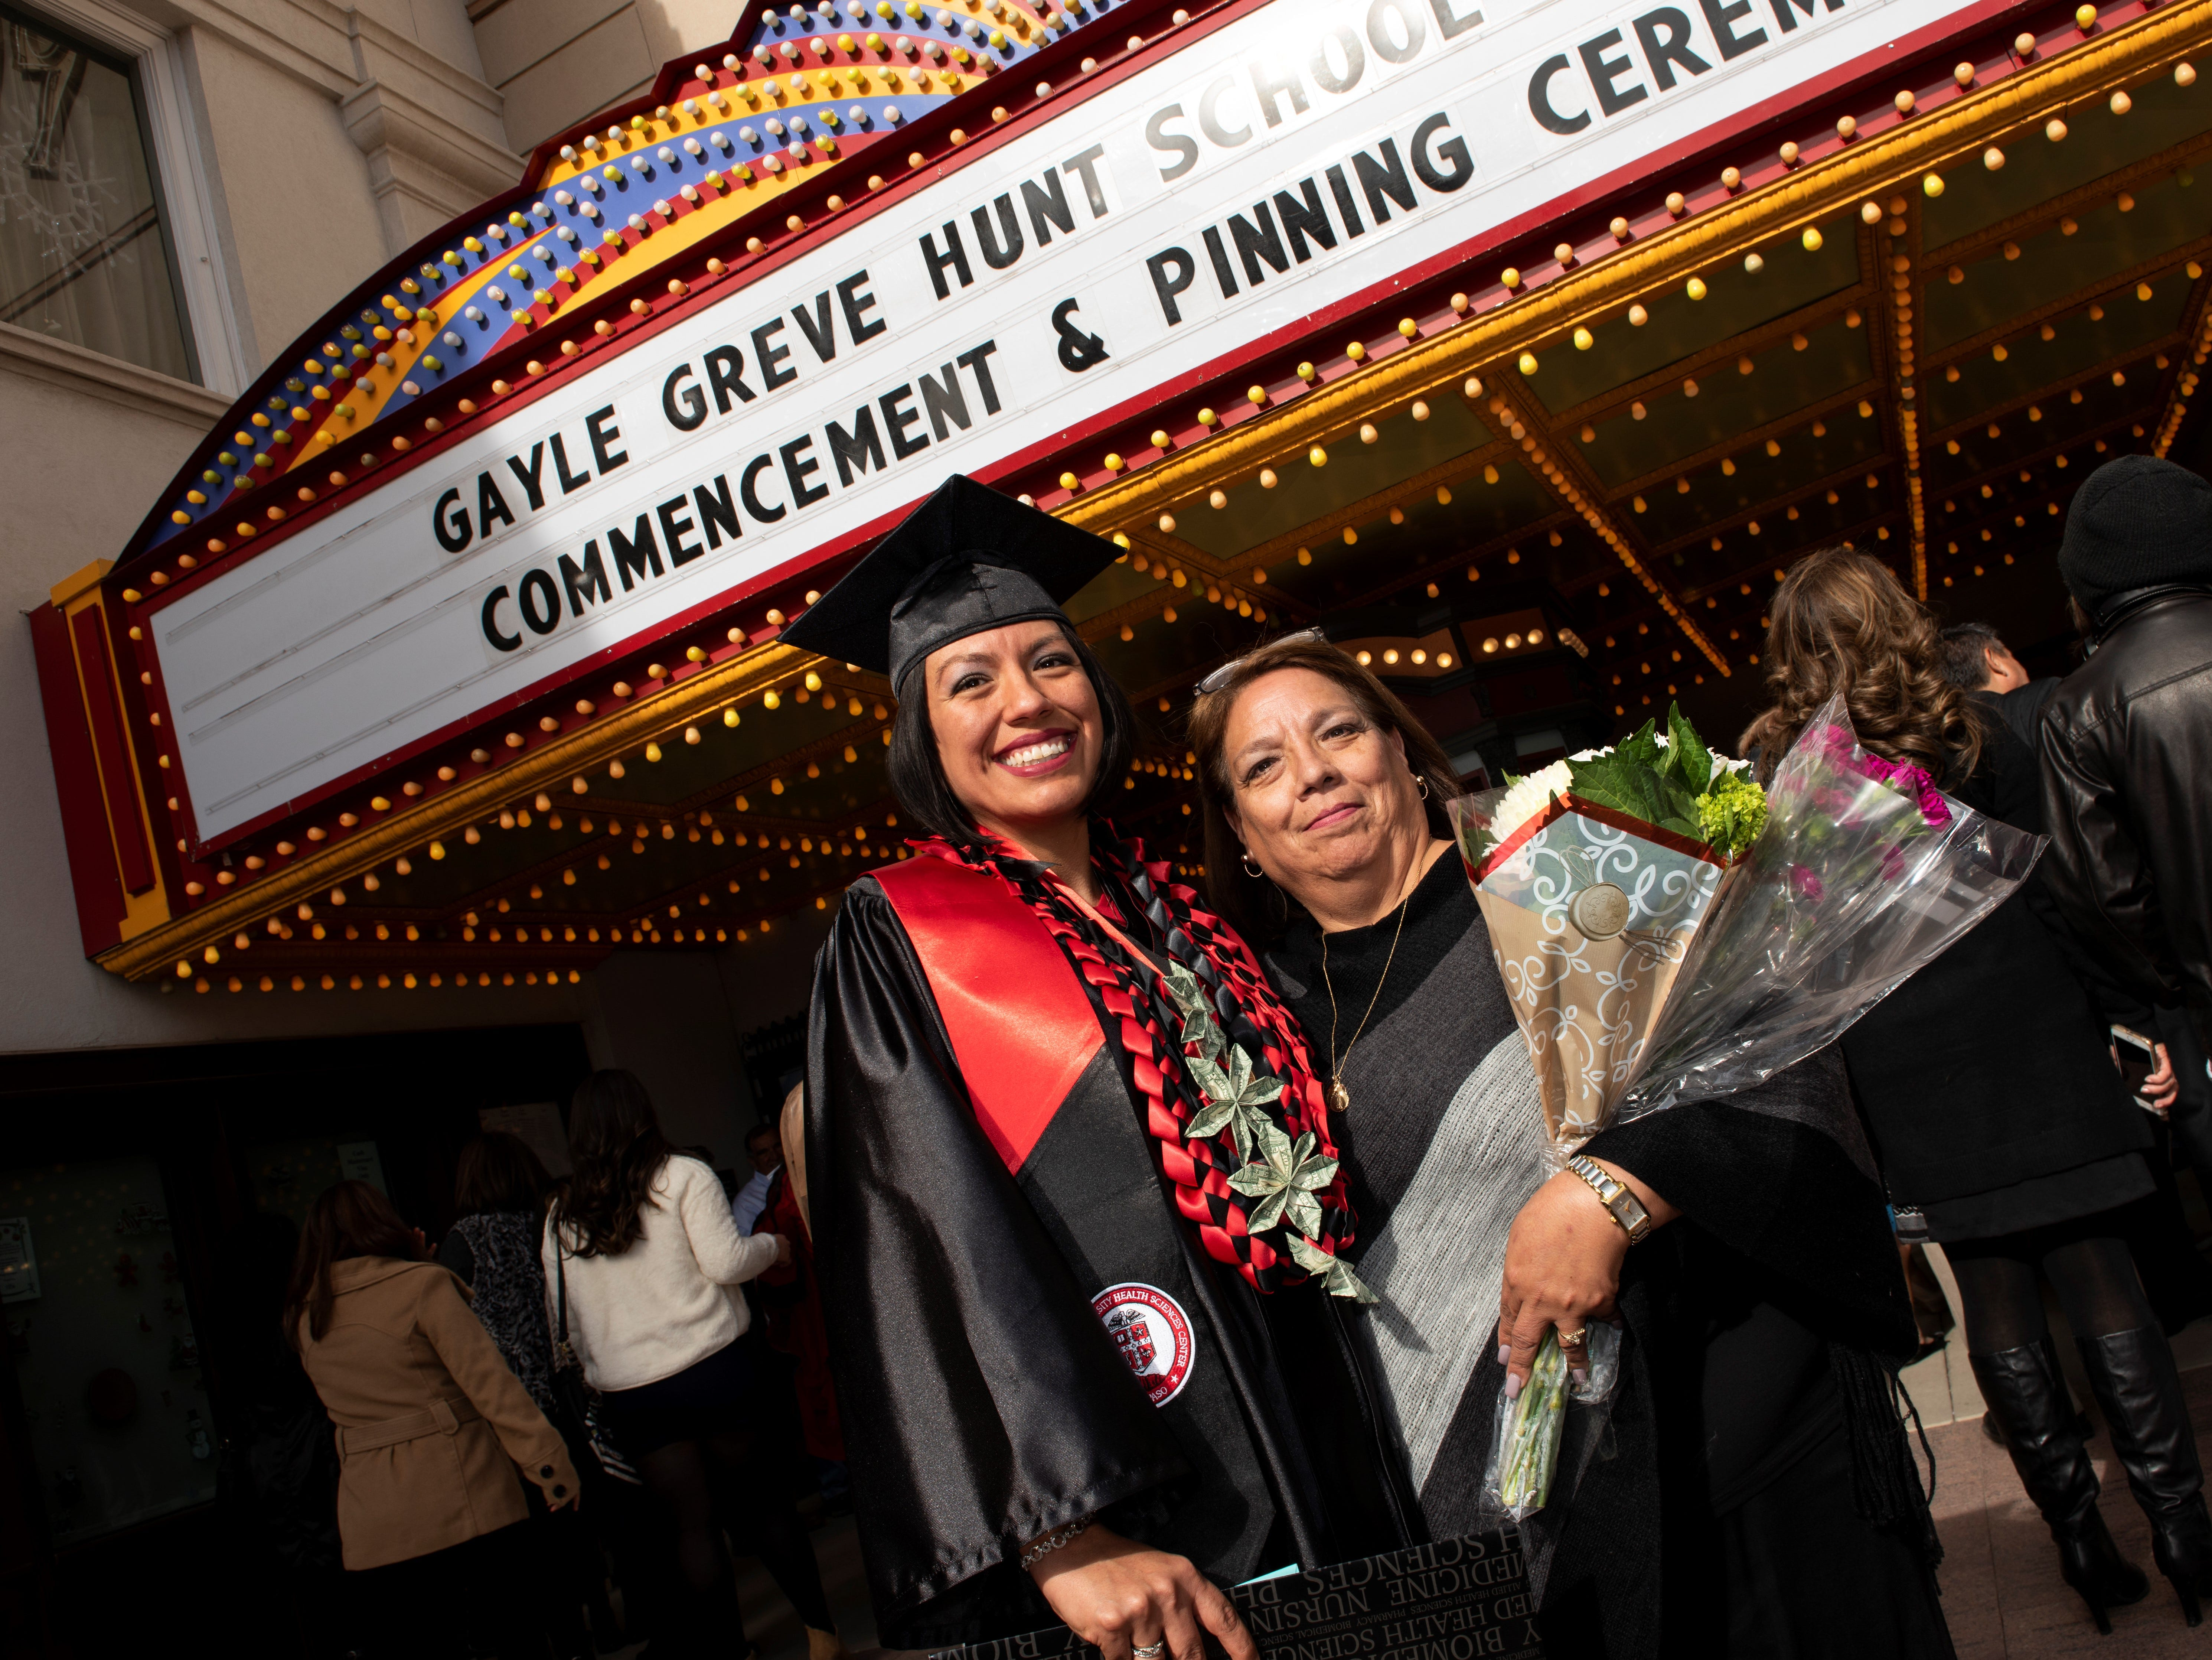 The marquee at the Plaza Theatre made for a dramatic backdrop as the Texas Tech University Health Sciences Center El Paso Gayle Greve Hunt School of Nursing held its December 2018 Commencement and Pinning Ceremony on Saturday at the Plaza Theatre.